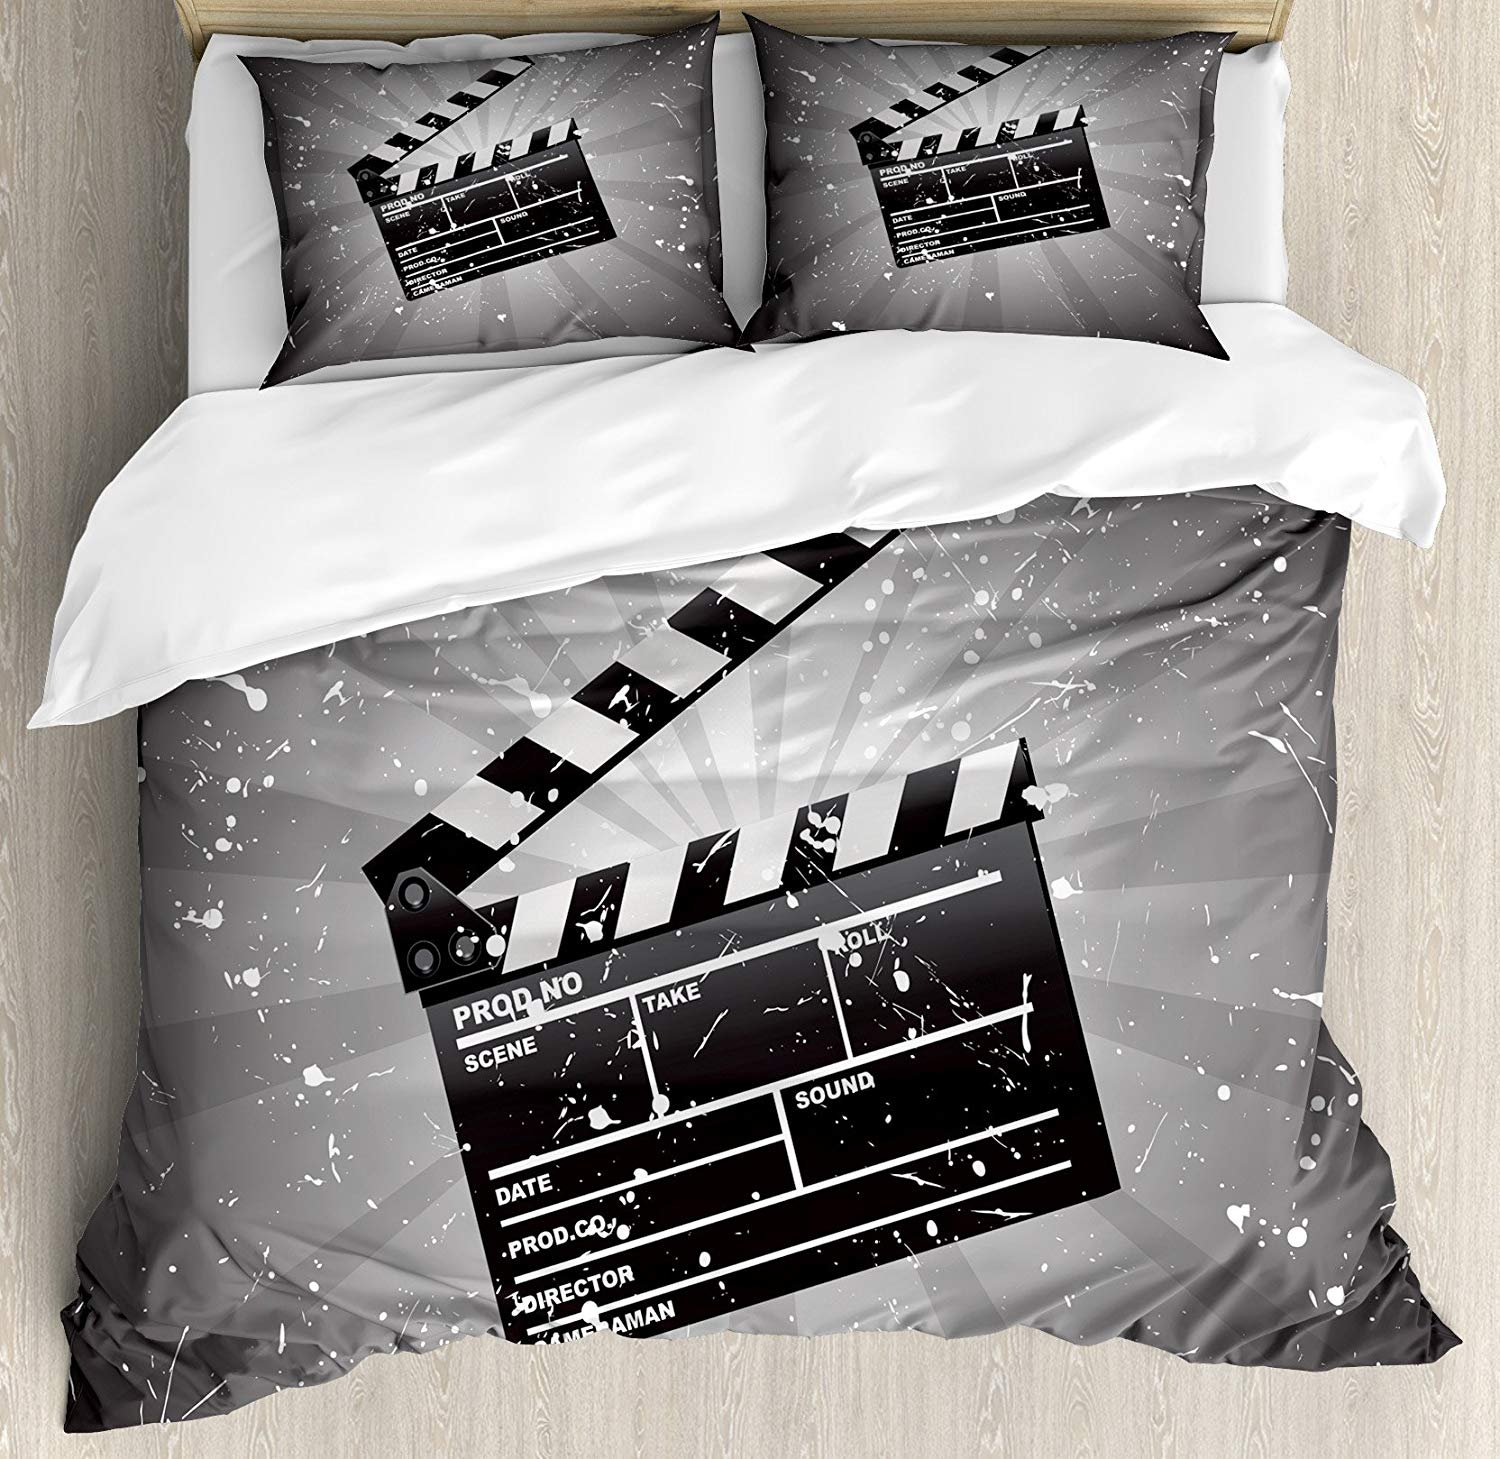 Movie Theater Twin Duvet Cover Sets 4 Piece Bedding Set Bedspread with 2 Pillow Sham, Flat Sheet for Adult/Kids/Teens, Clapper Board on Retro Backdrop with Grunge Effect Director Cut Scene